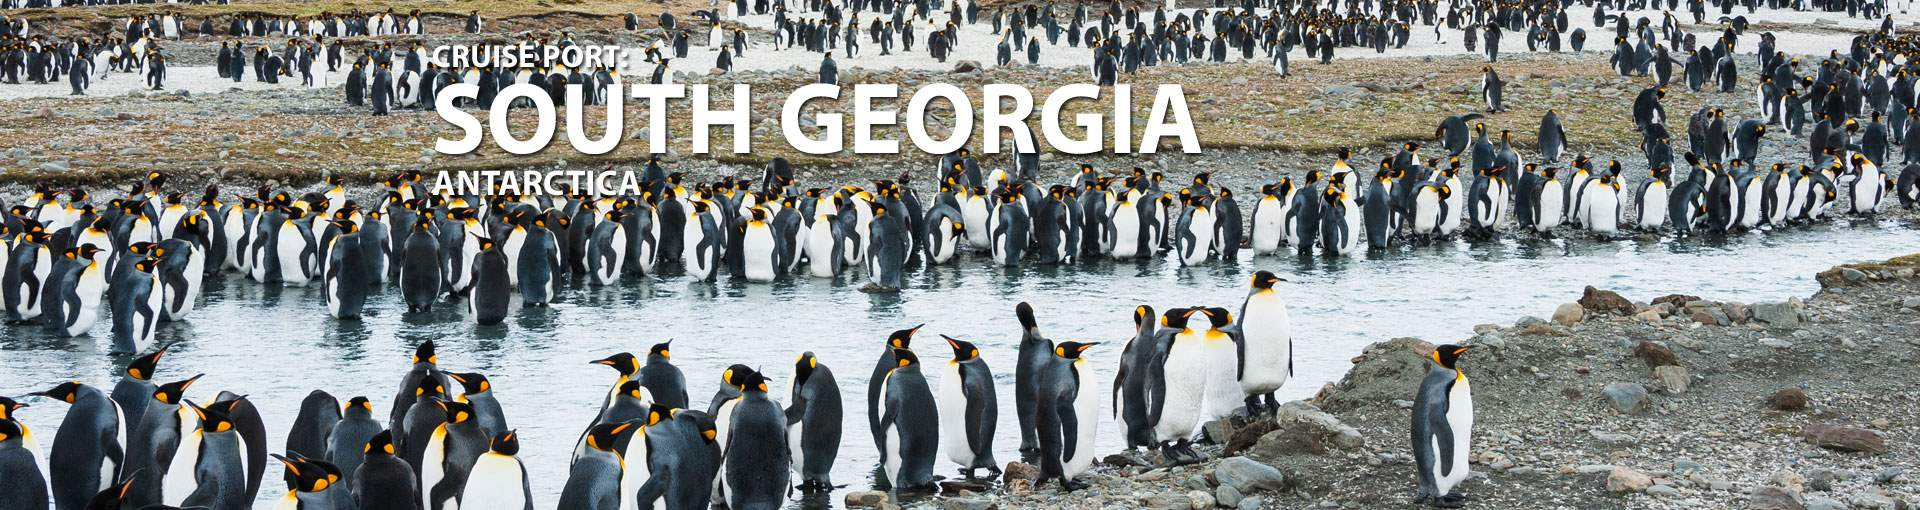 Cruises to South Georgia, Antarctica